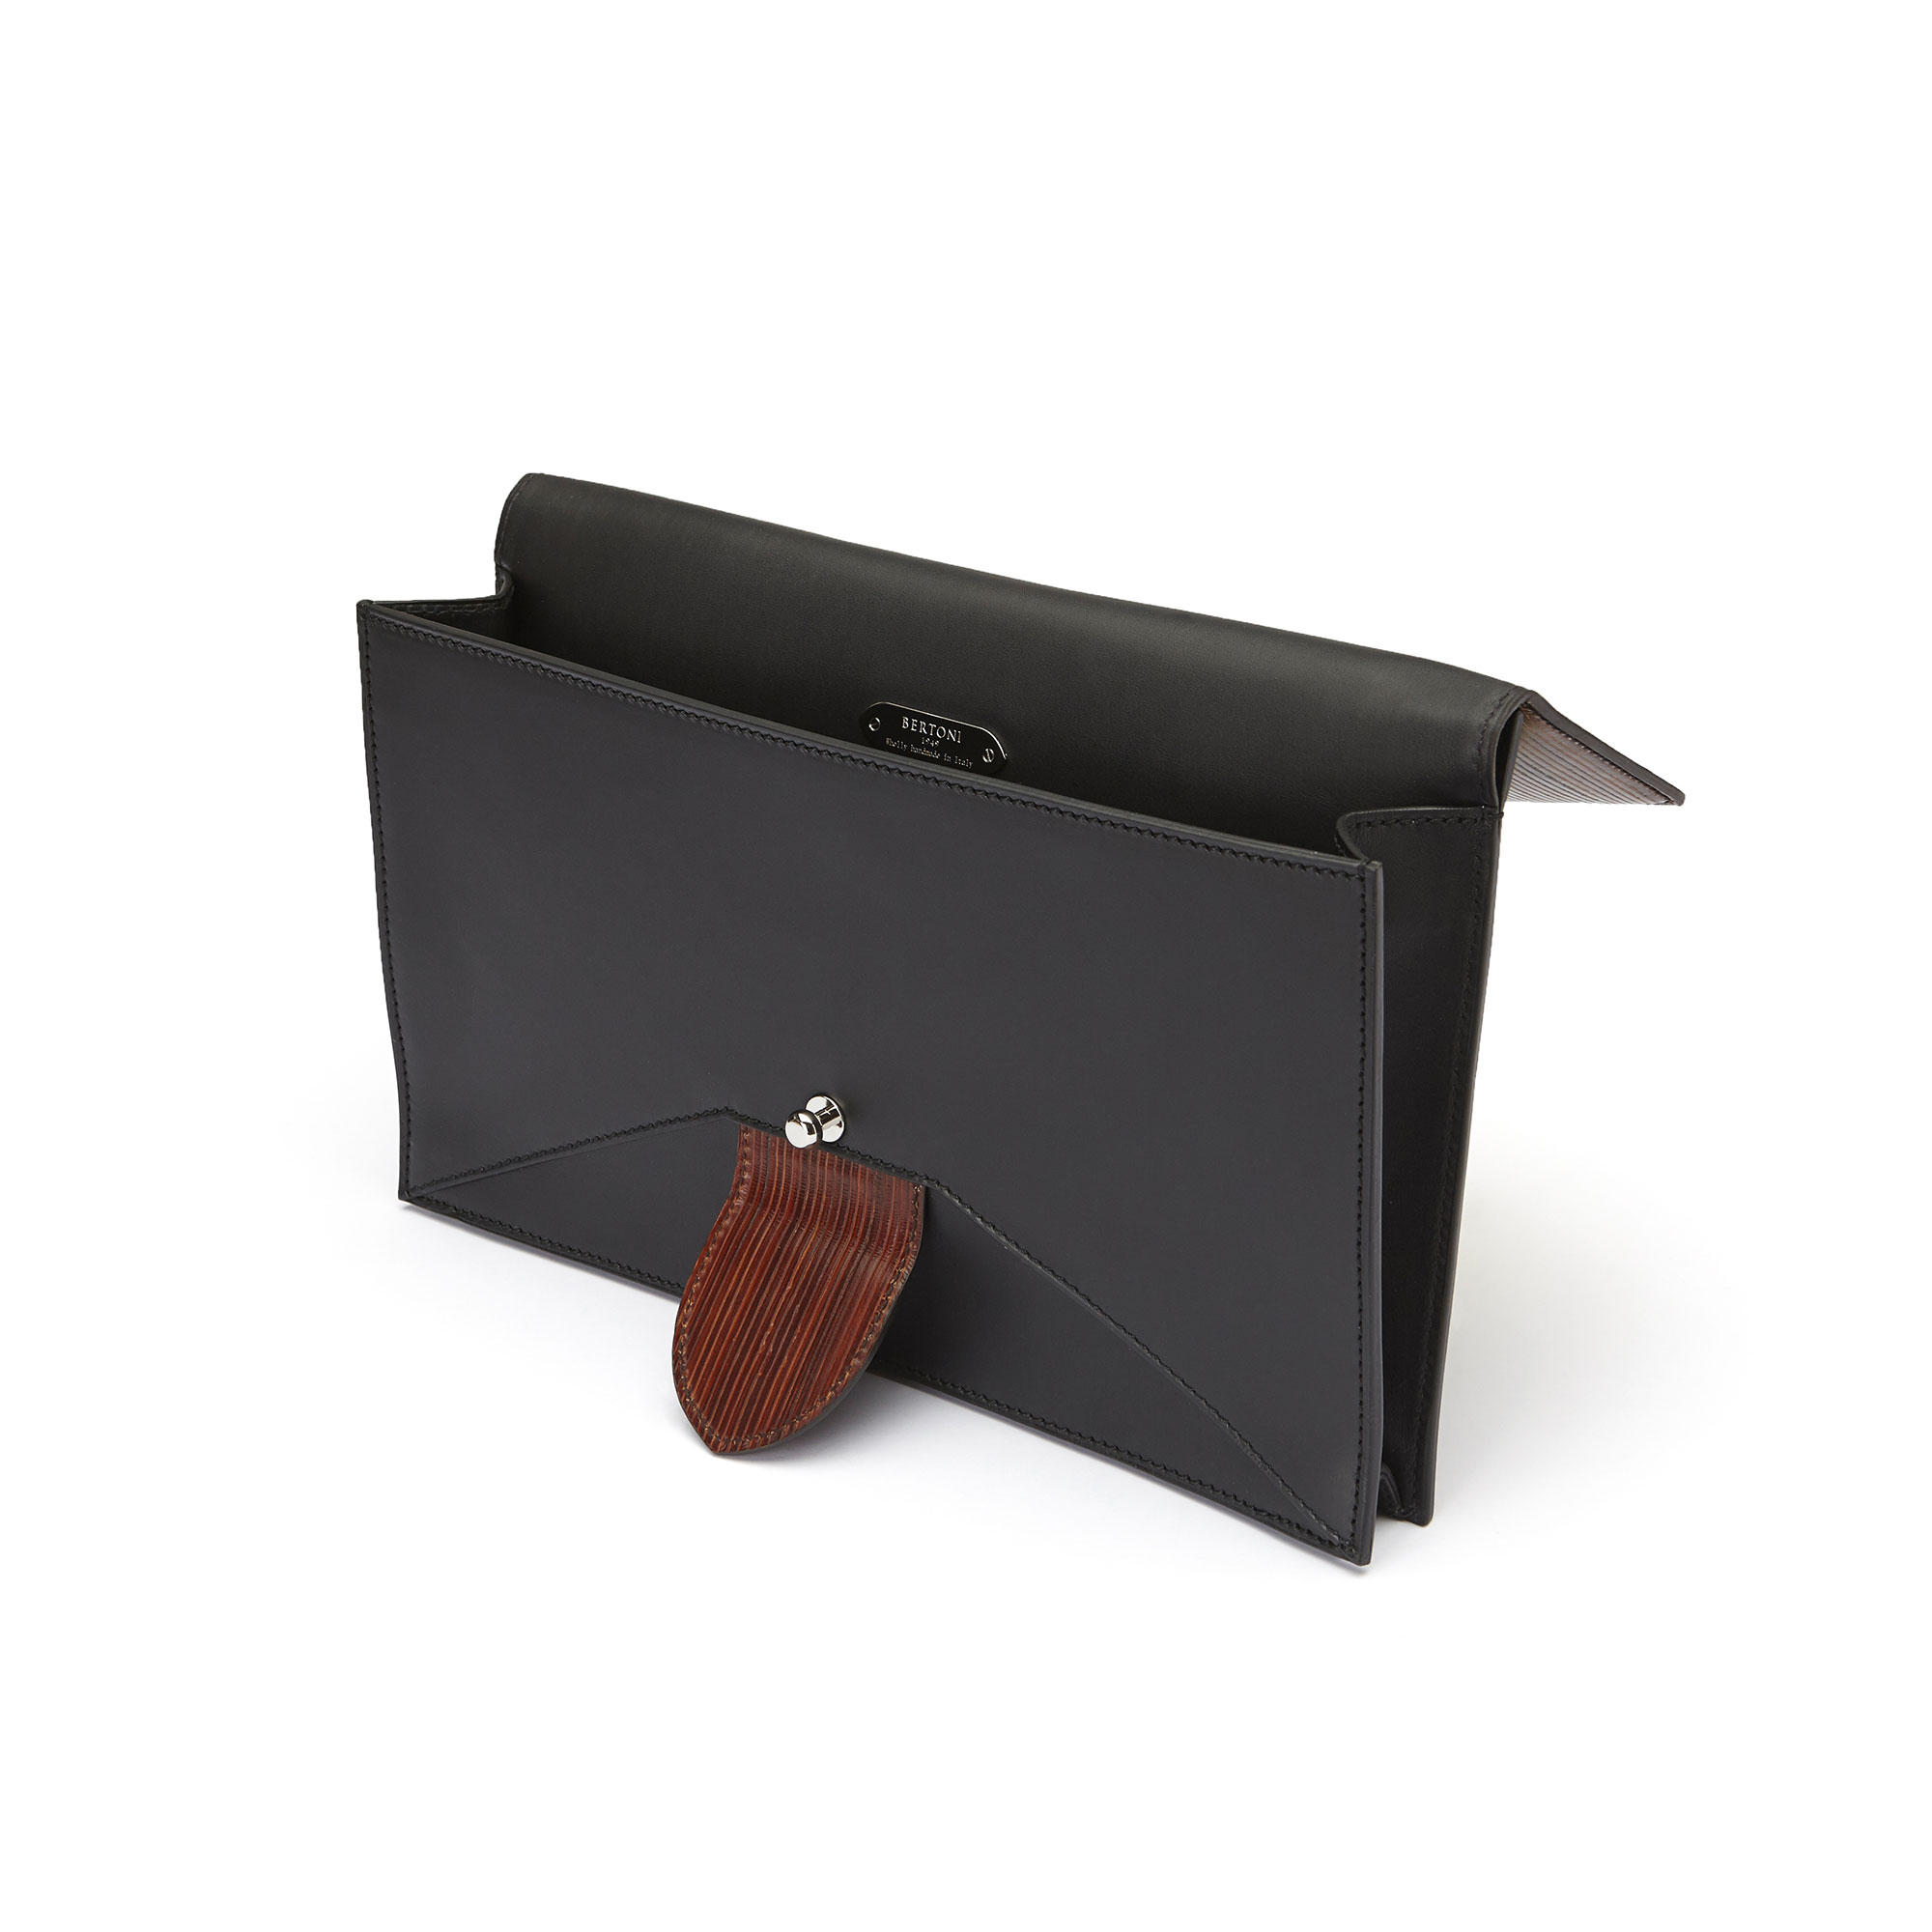 The black and brown wood leather, french calf Dafne Clutch bag by Bertoni 1949 04